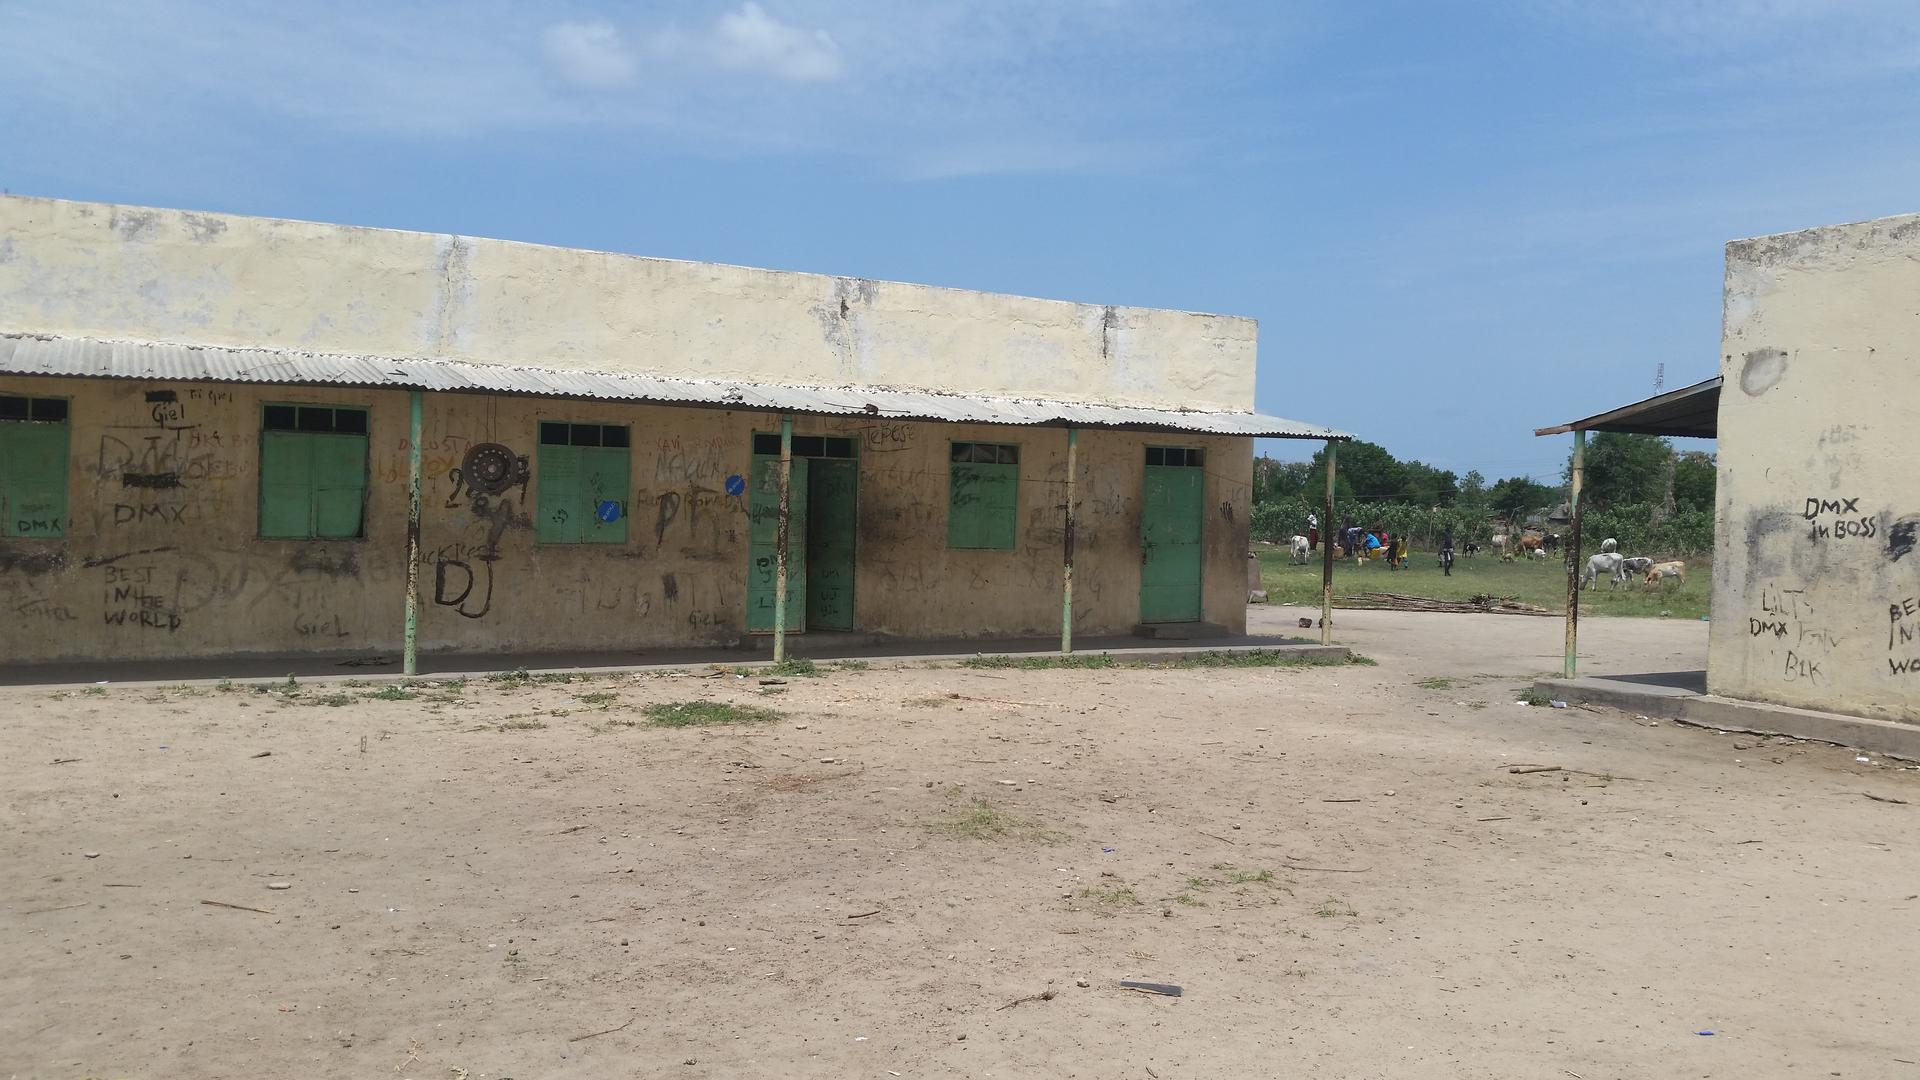 A school in Bentiu, Unity state, used as a barracks by soldiers and their families.